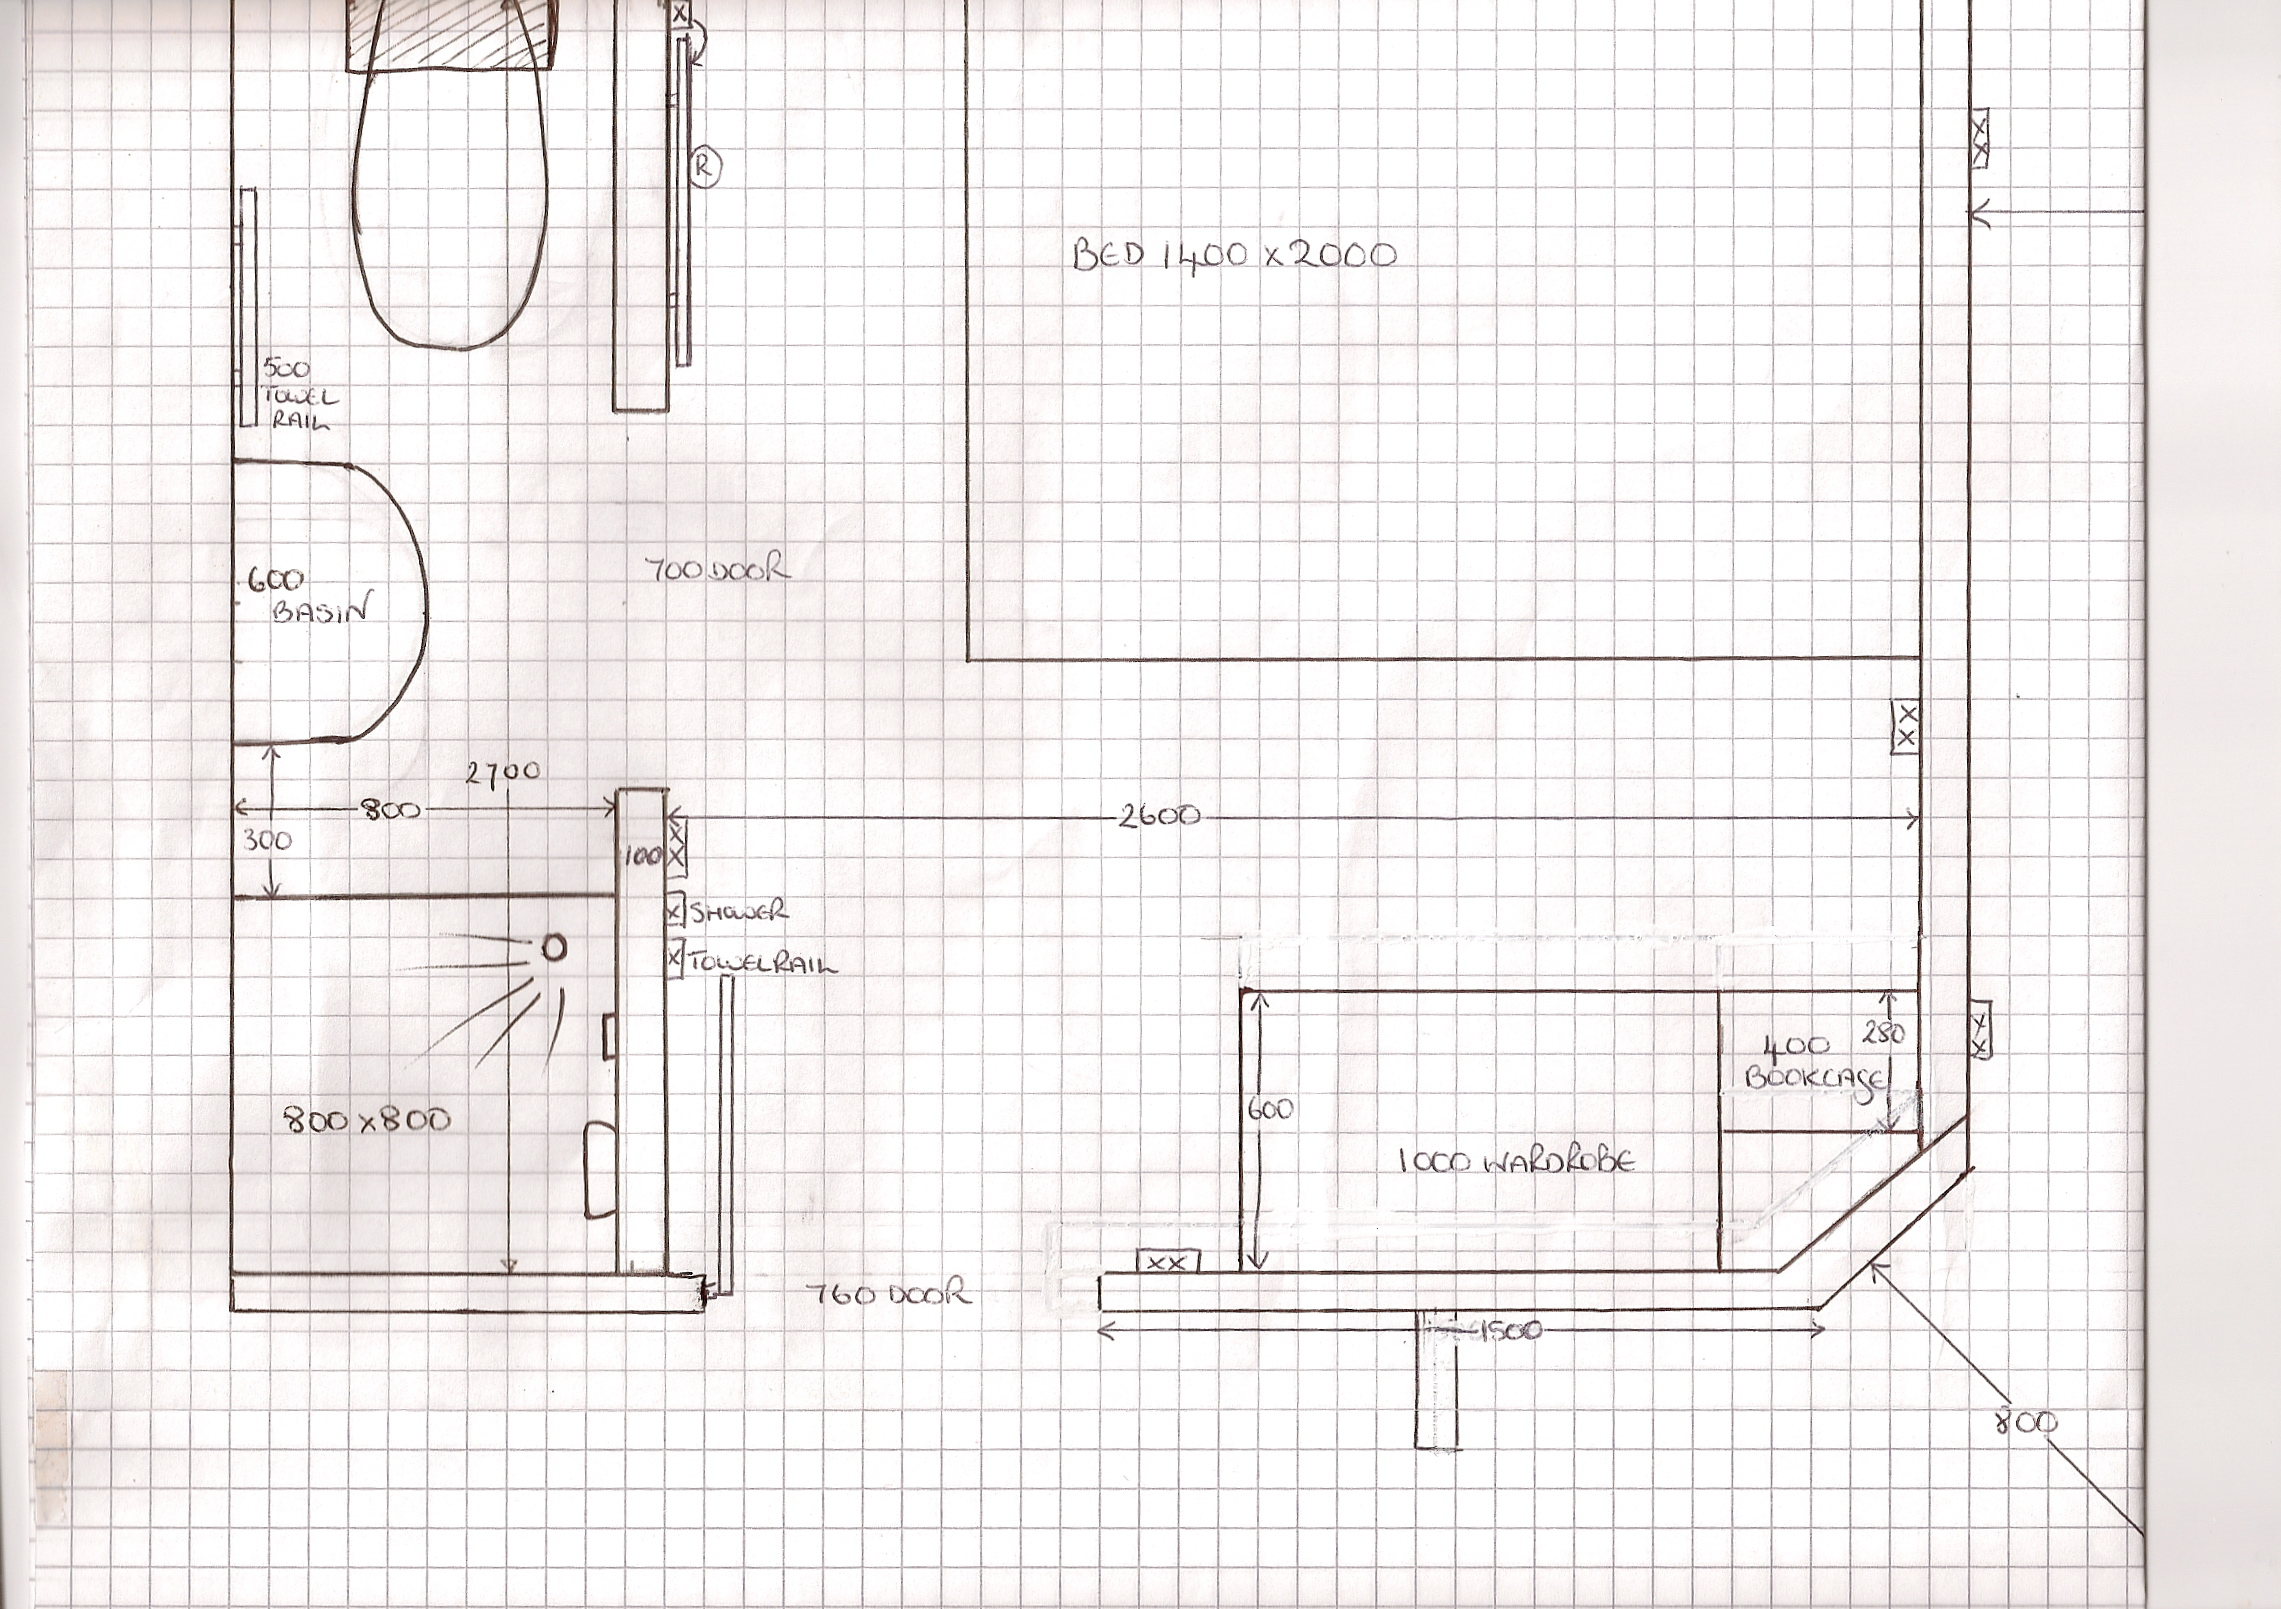 Project squeeze layout explained and completed shower room moregeous making homes more - Room design for small space plan ...